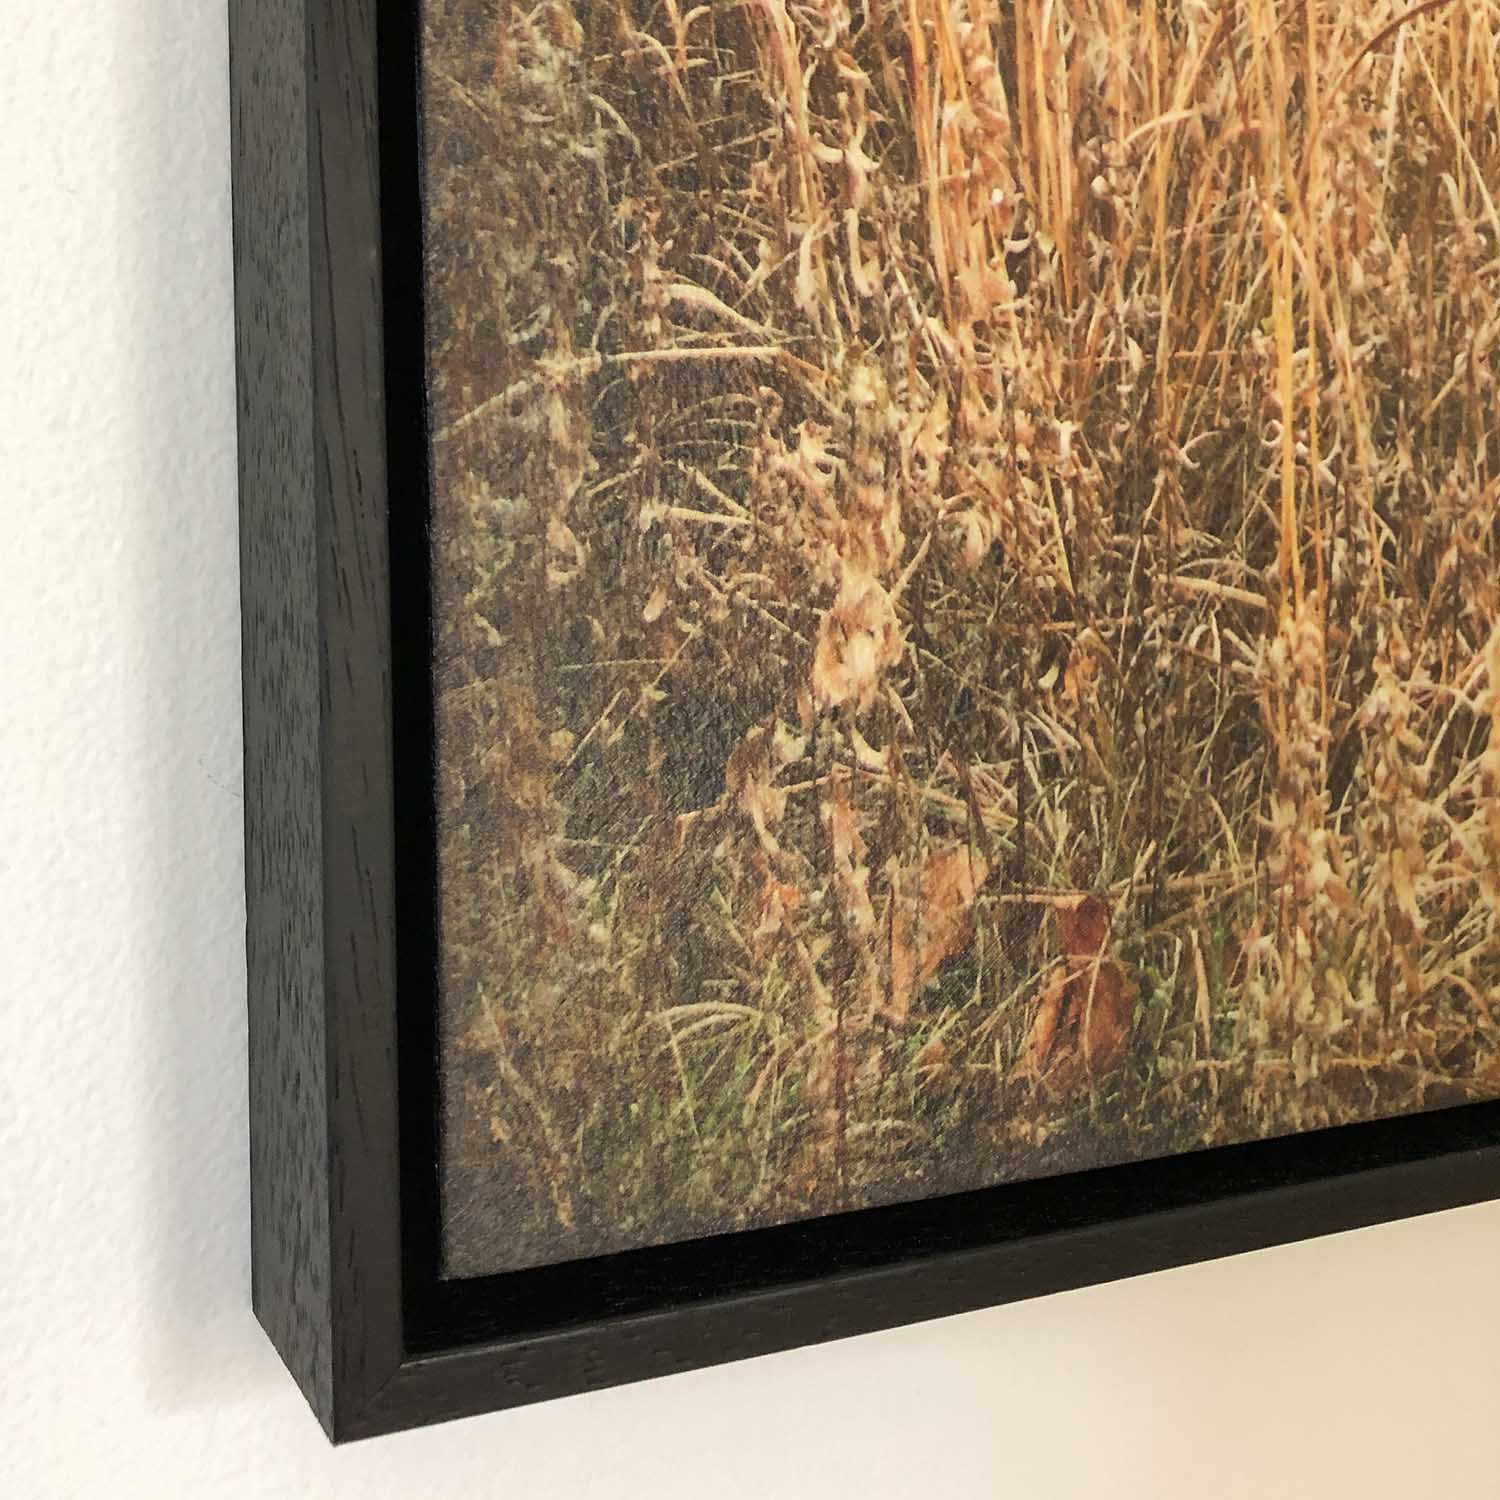 Corner detail of wood grain frame and panel with reveal.